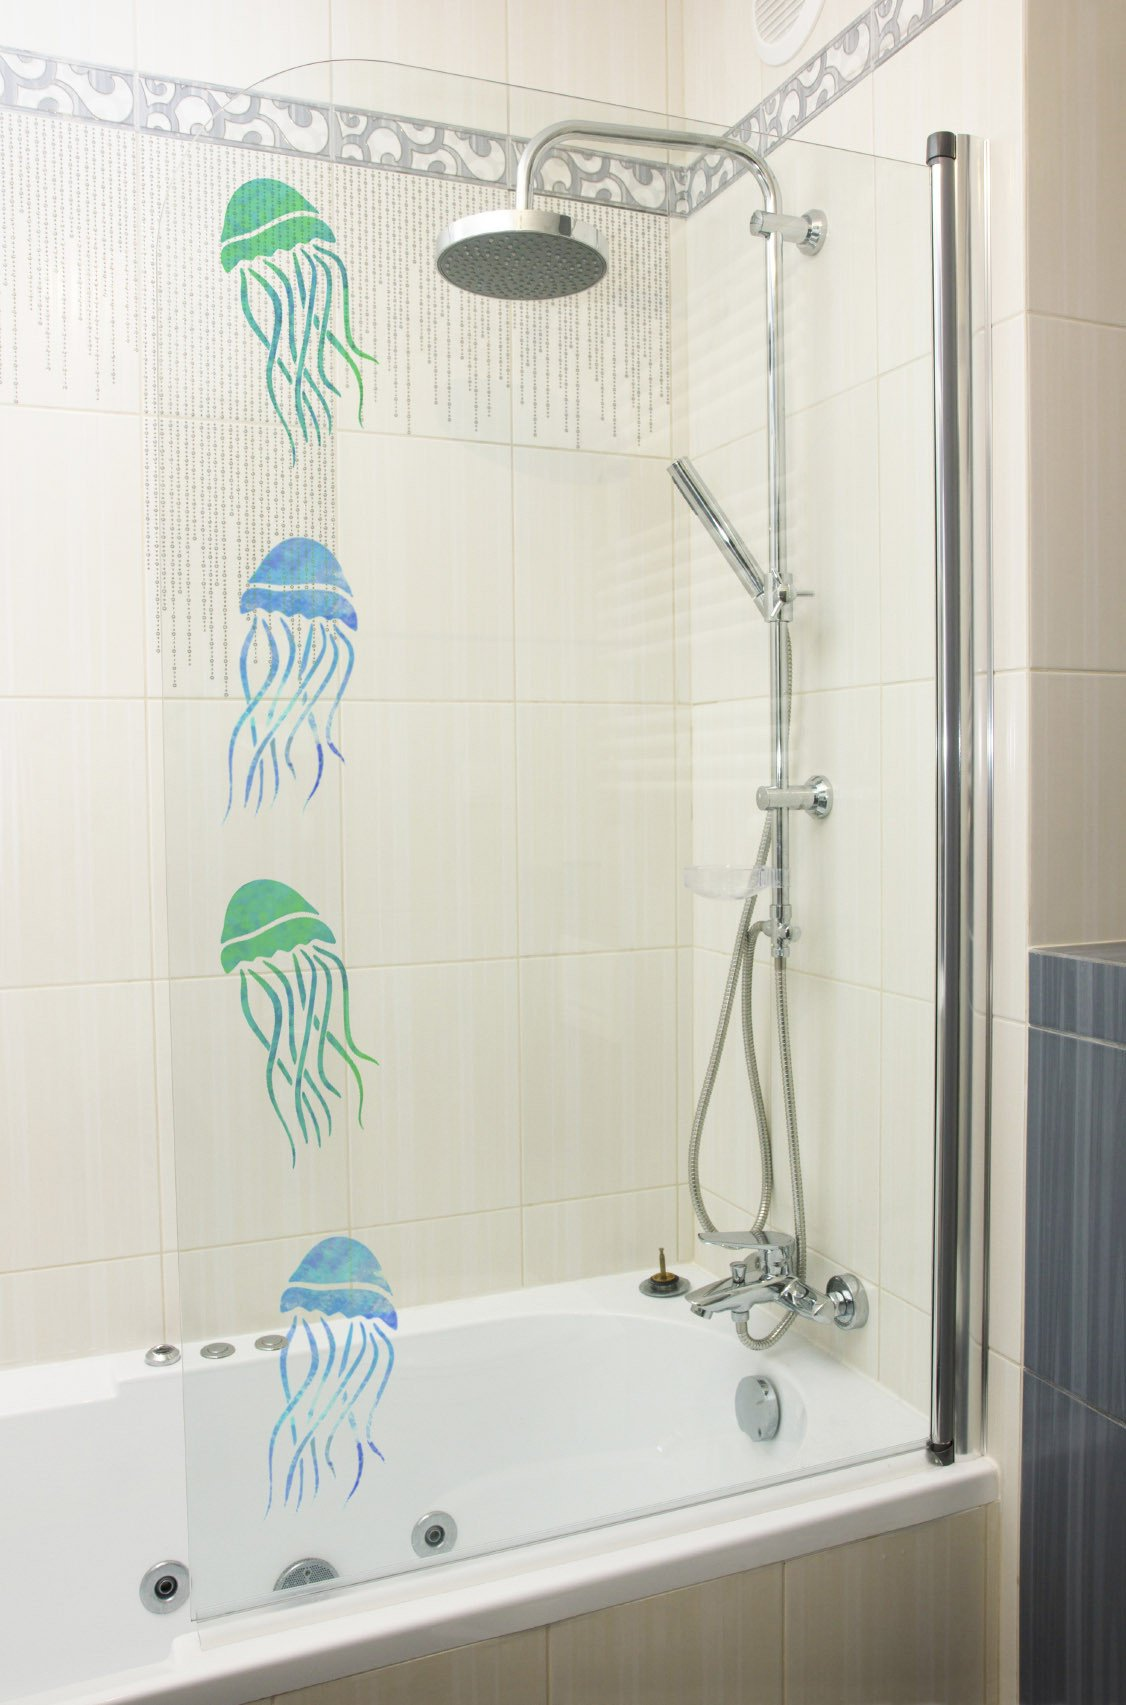 Craftstar Jellyfish Stencils on shower door